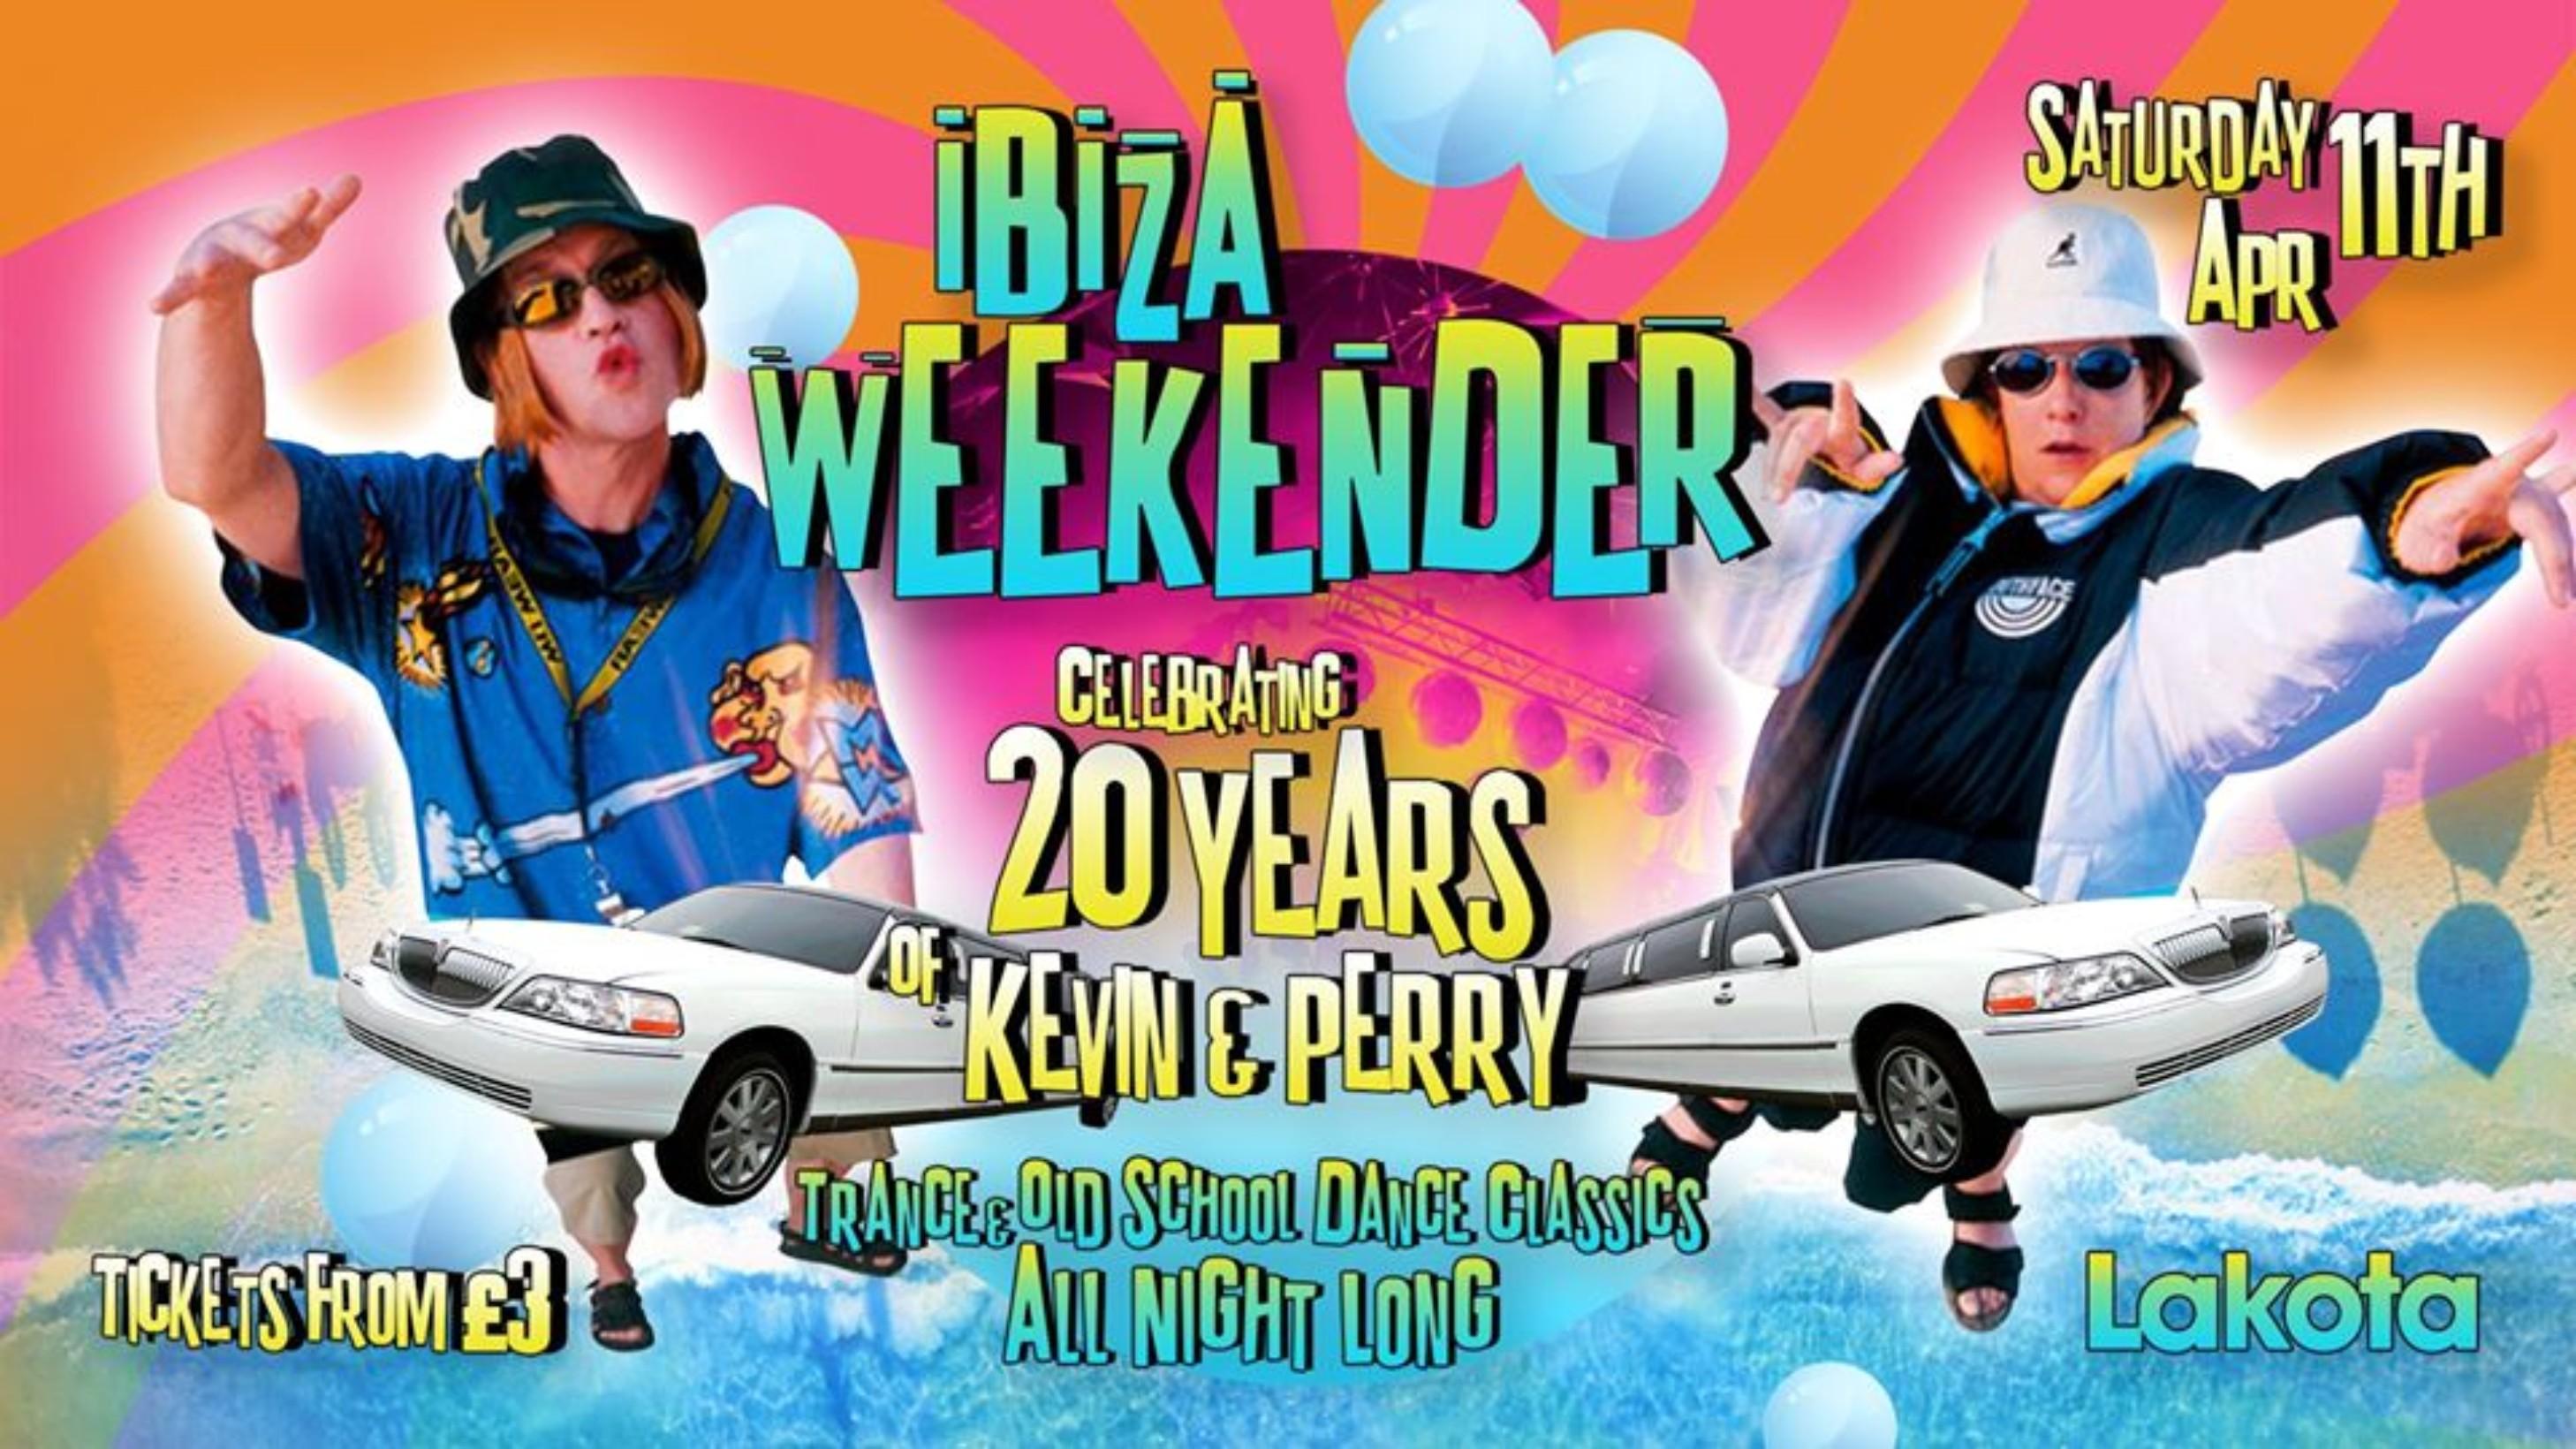 Ibiza Weekender: 20 years of Kevin and Perry!